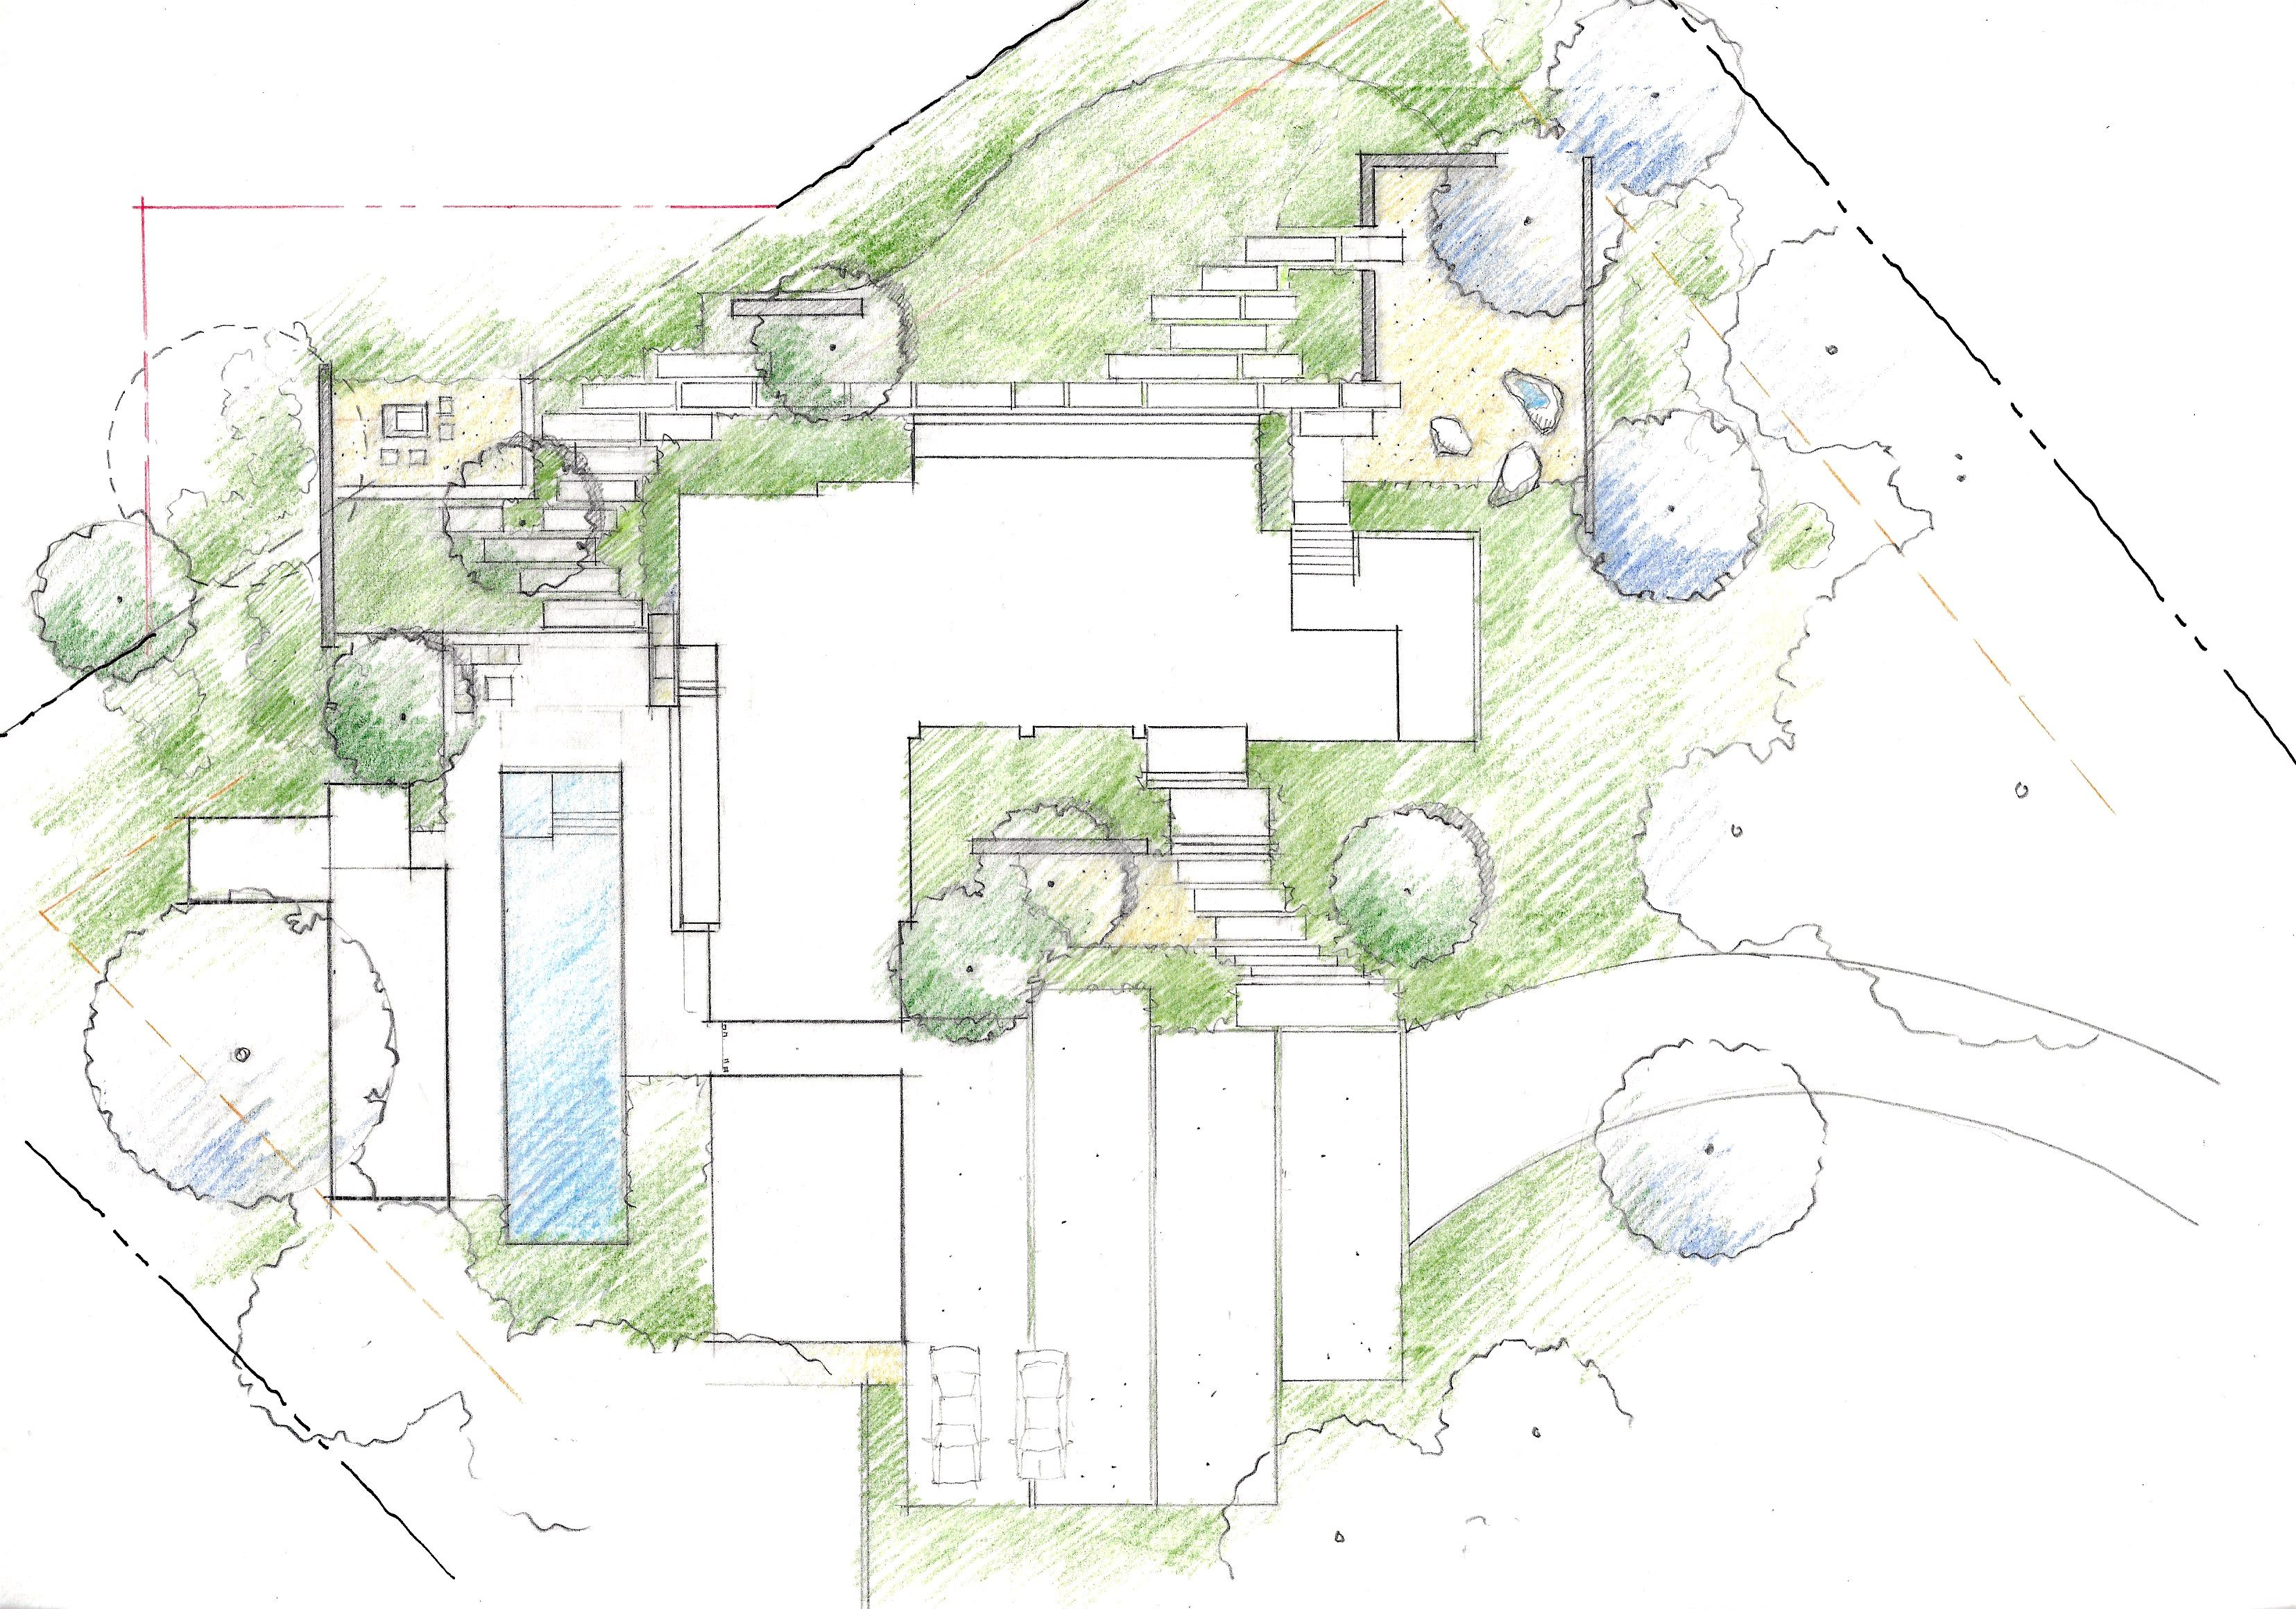 Peninsula residence: schematic site plan - pencil, colored pencil ...